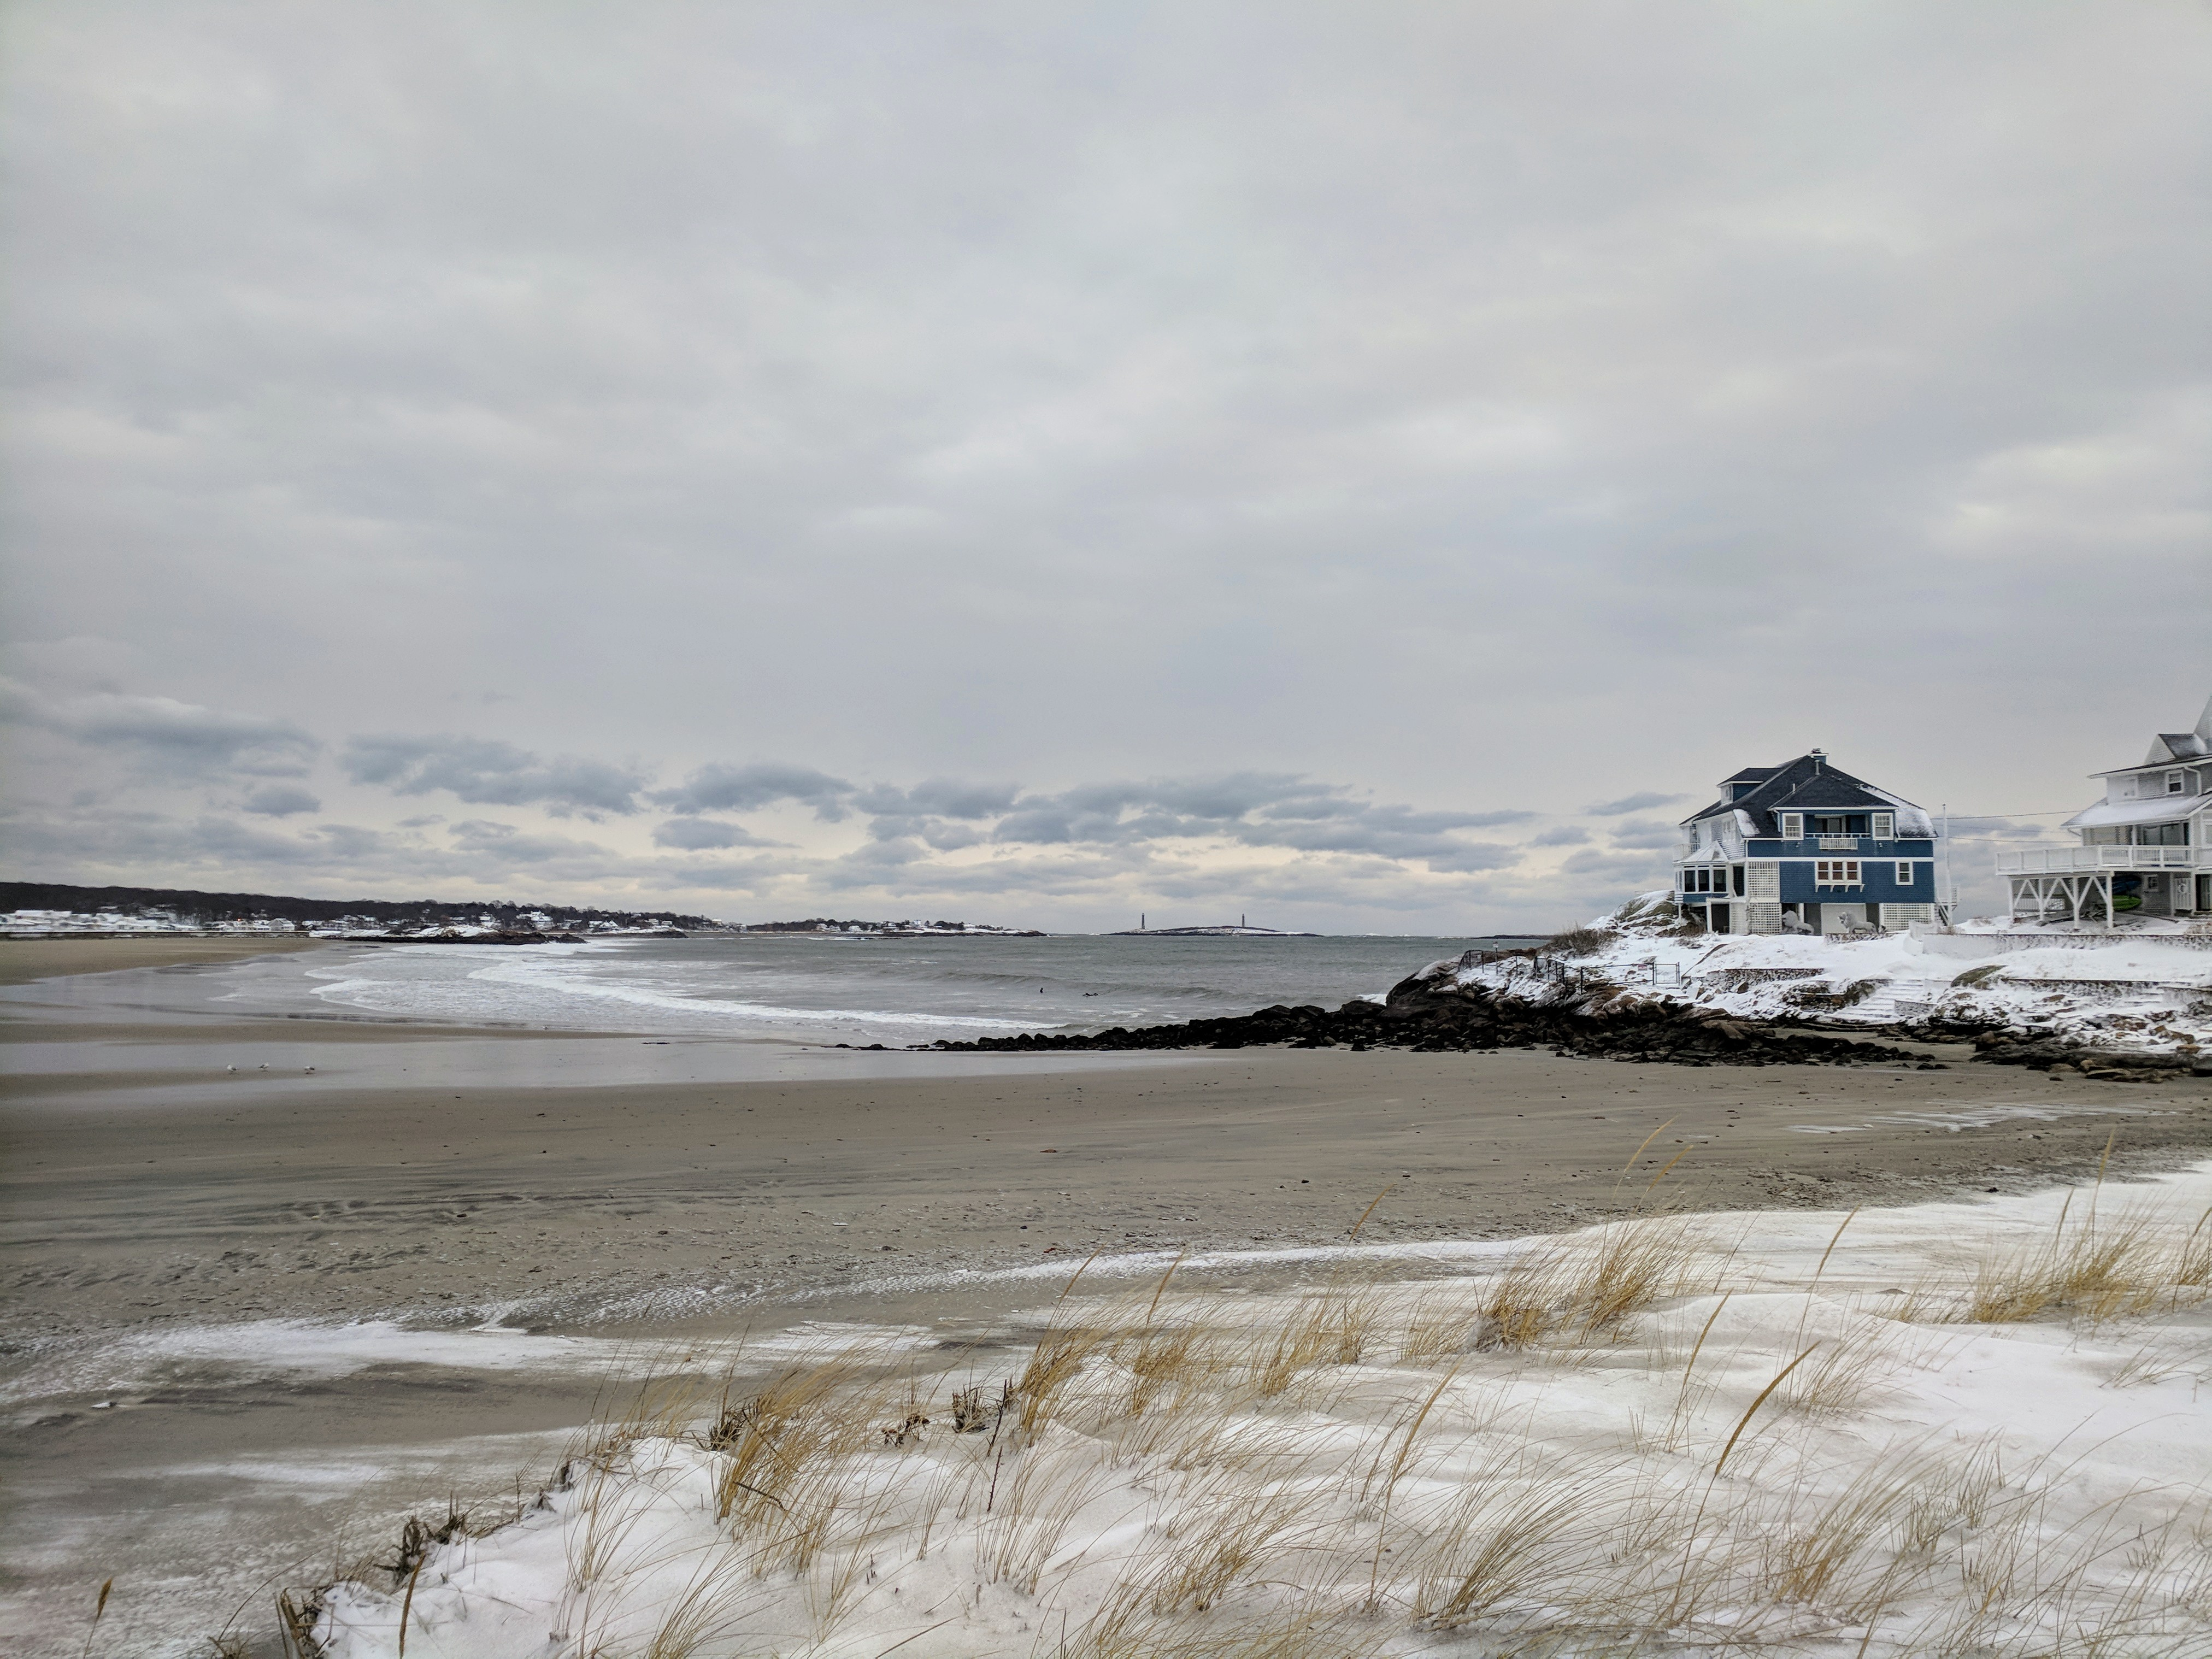 Long Beach Gloucester MA side morning after blizzard IMG_20180105_07 © c ryan